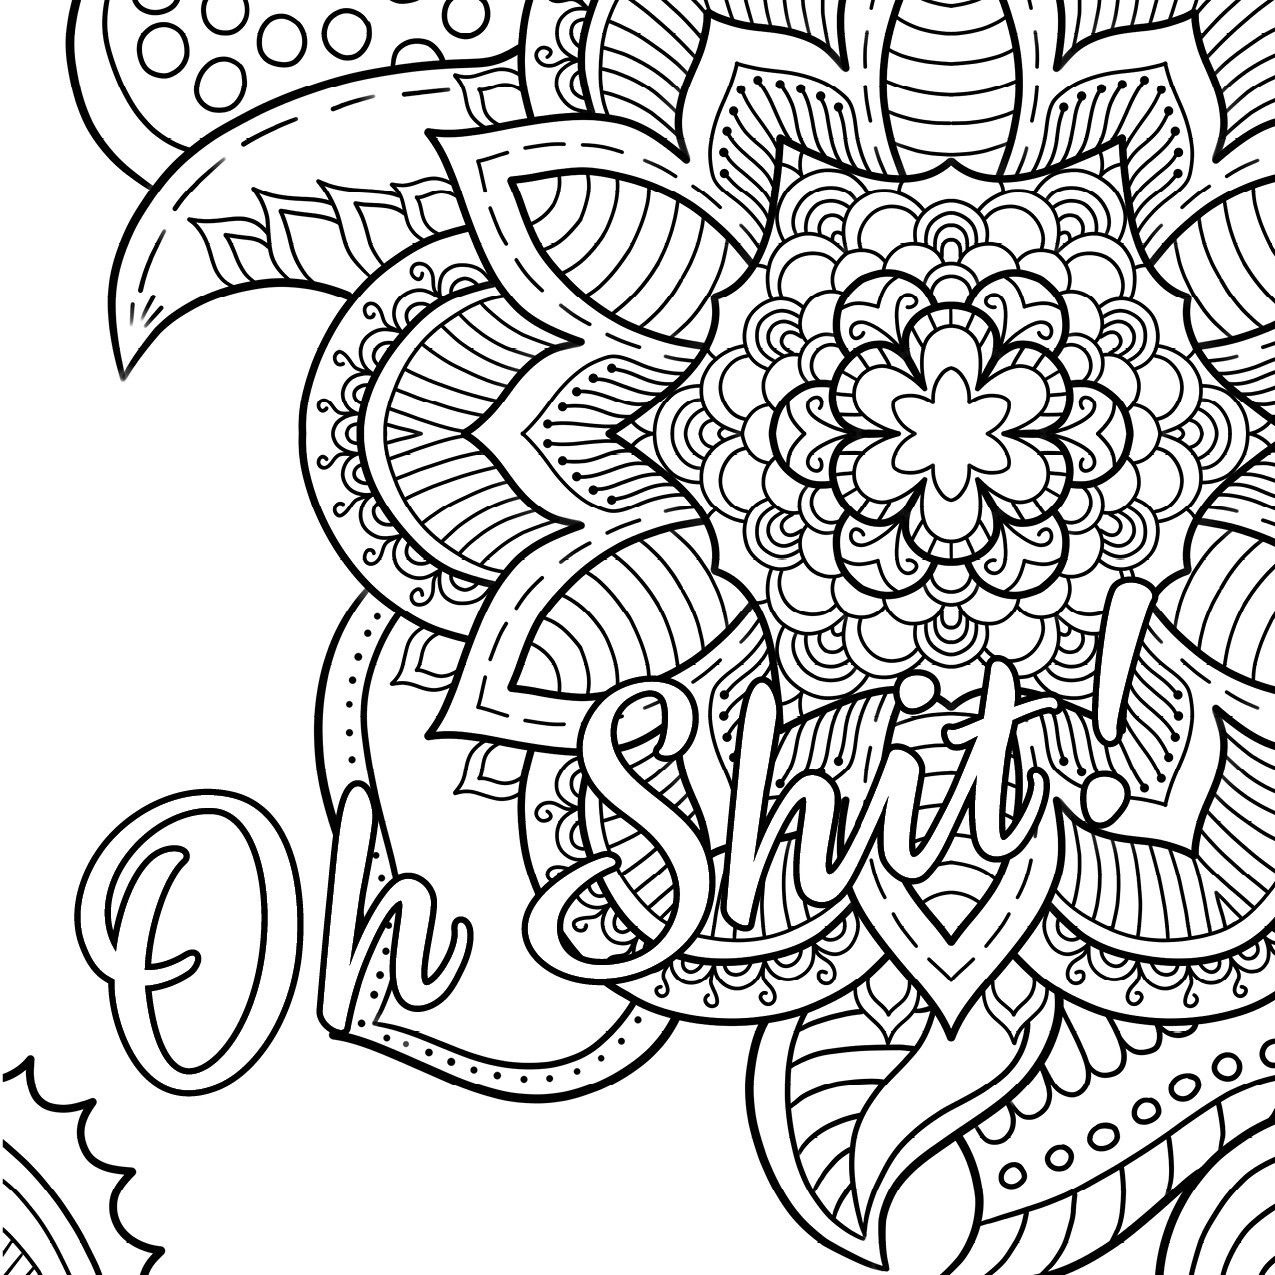 Swear Word Coloring Book #2 Free Printable Coloring Pages For Adults - Free Printable Coloring Book